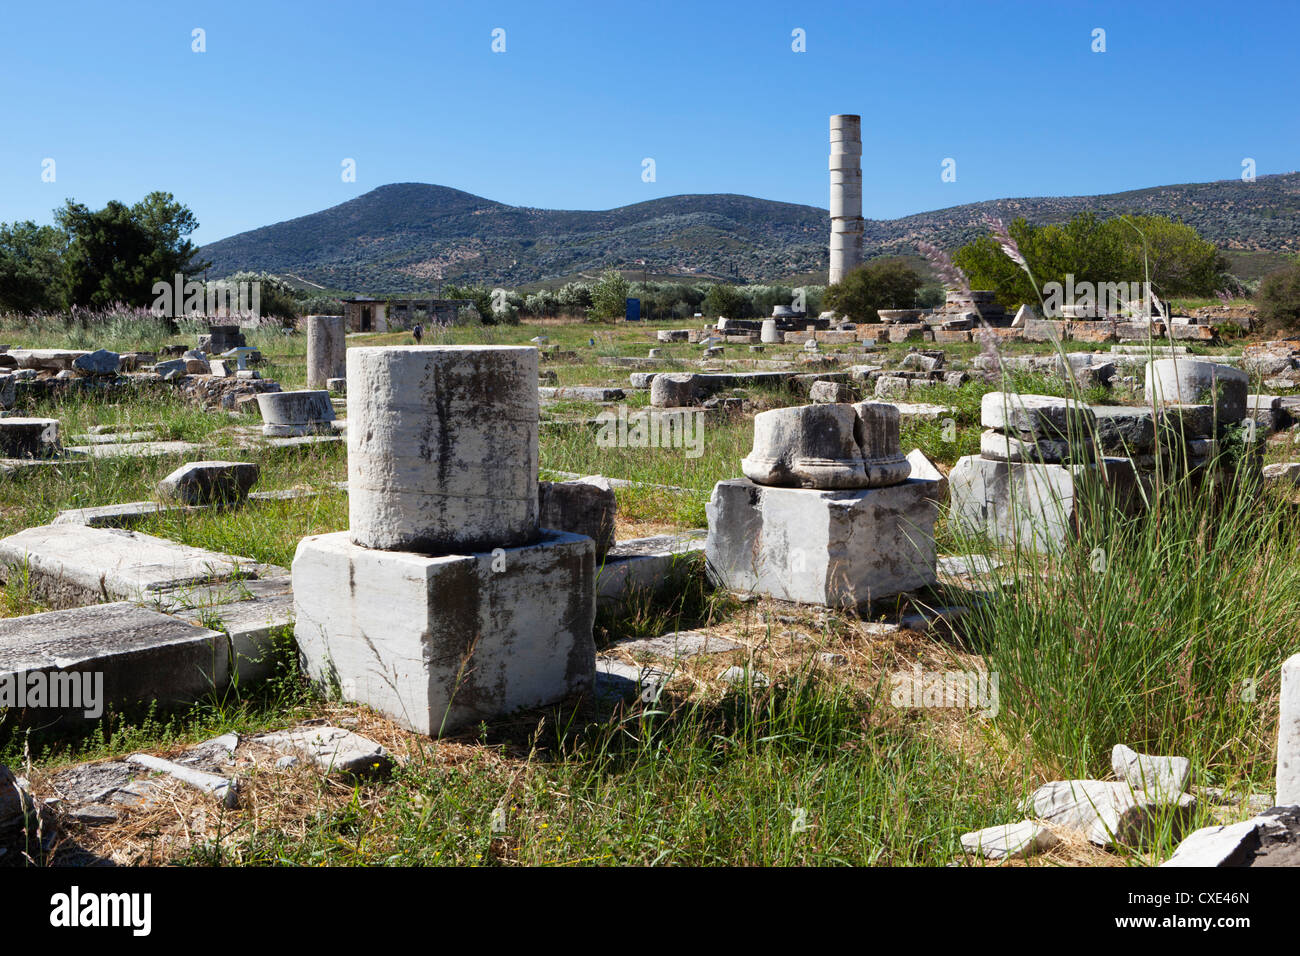 Ireon archaeological site with columns of the Temple of Hera, Ireon, Samos, Aegean Islands, Greece - Stock Image